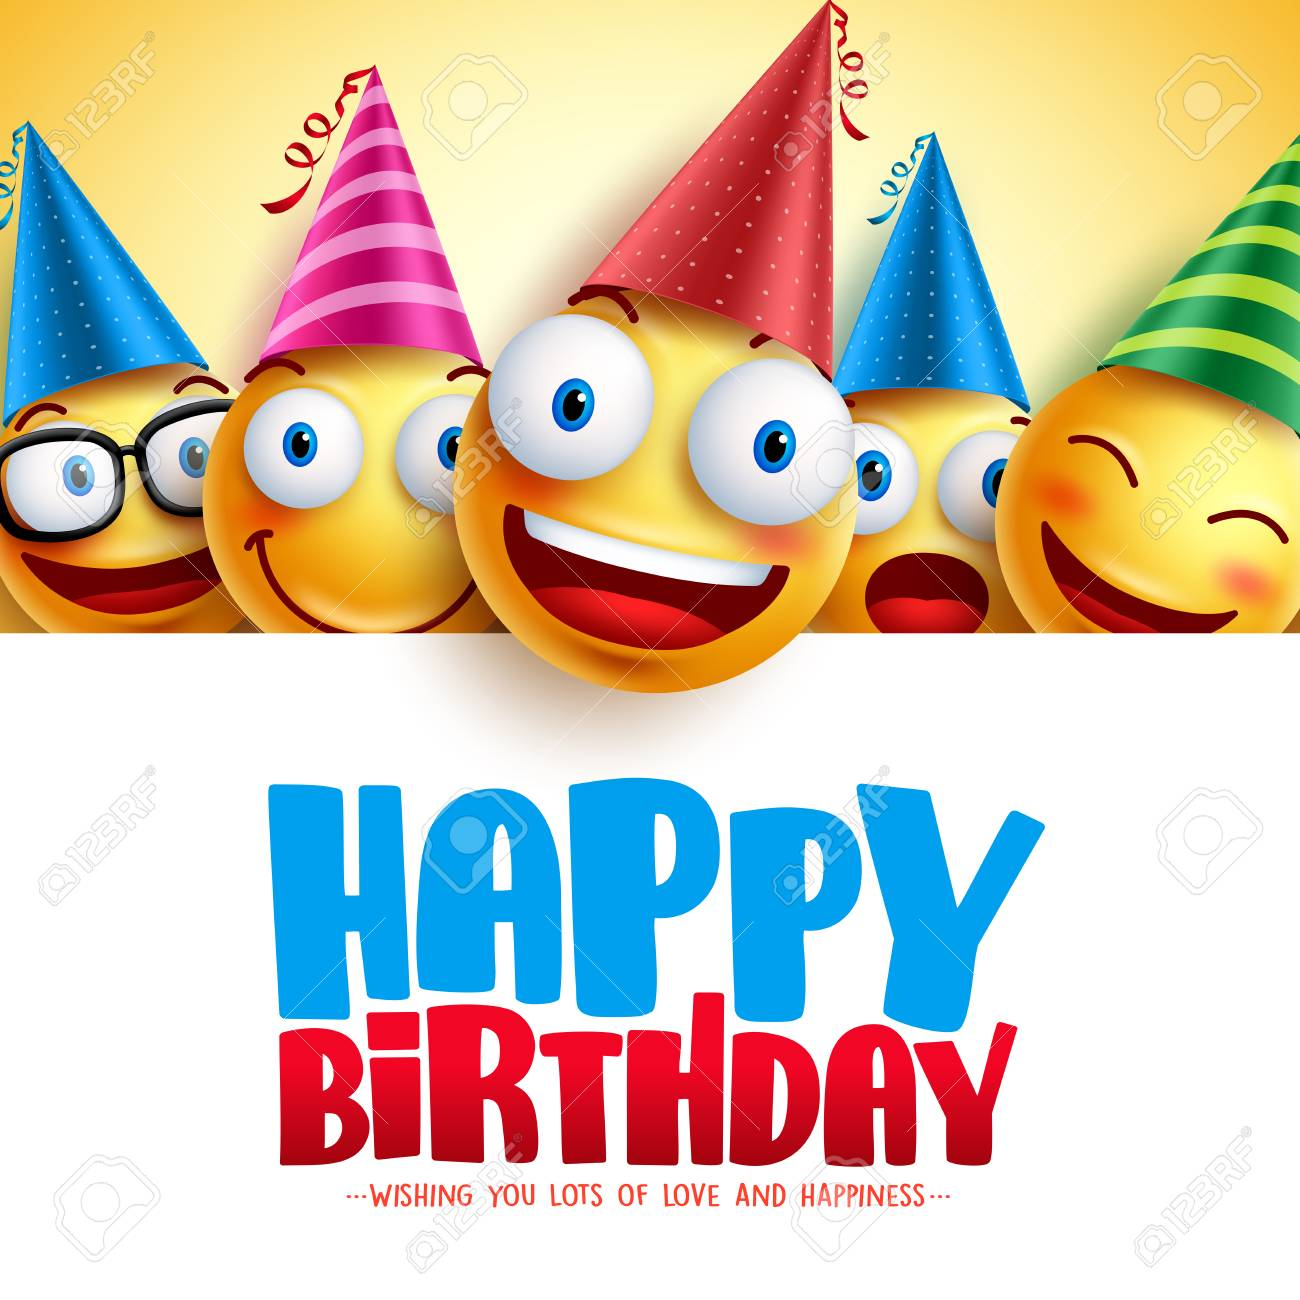 Happy Birthday Smileys Vector Background Design With Yellow Funny Royalty Free Cliparts Vectors And Stock Illustration Image 99347083